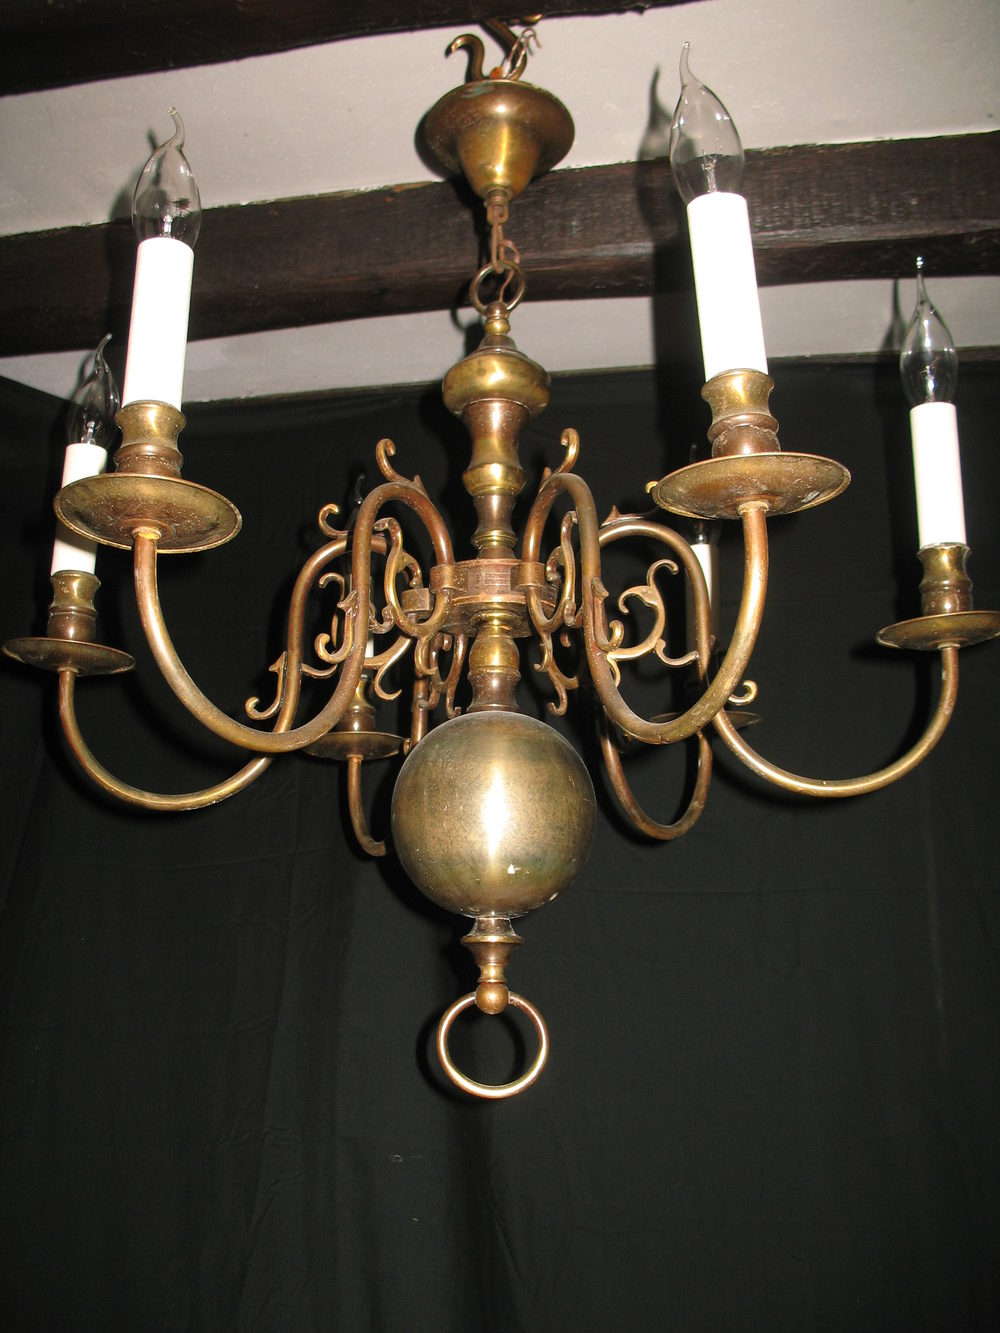 Brass flemish chandeliers flemish chandeliers a good six branch smaller size flemish chandelier this fitting is brass and has built up a good colour over the years but can be repolished if required arubaitofo Gallery